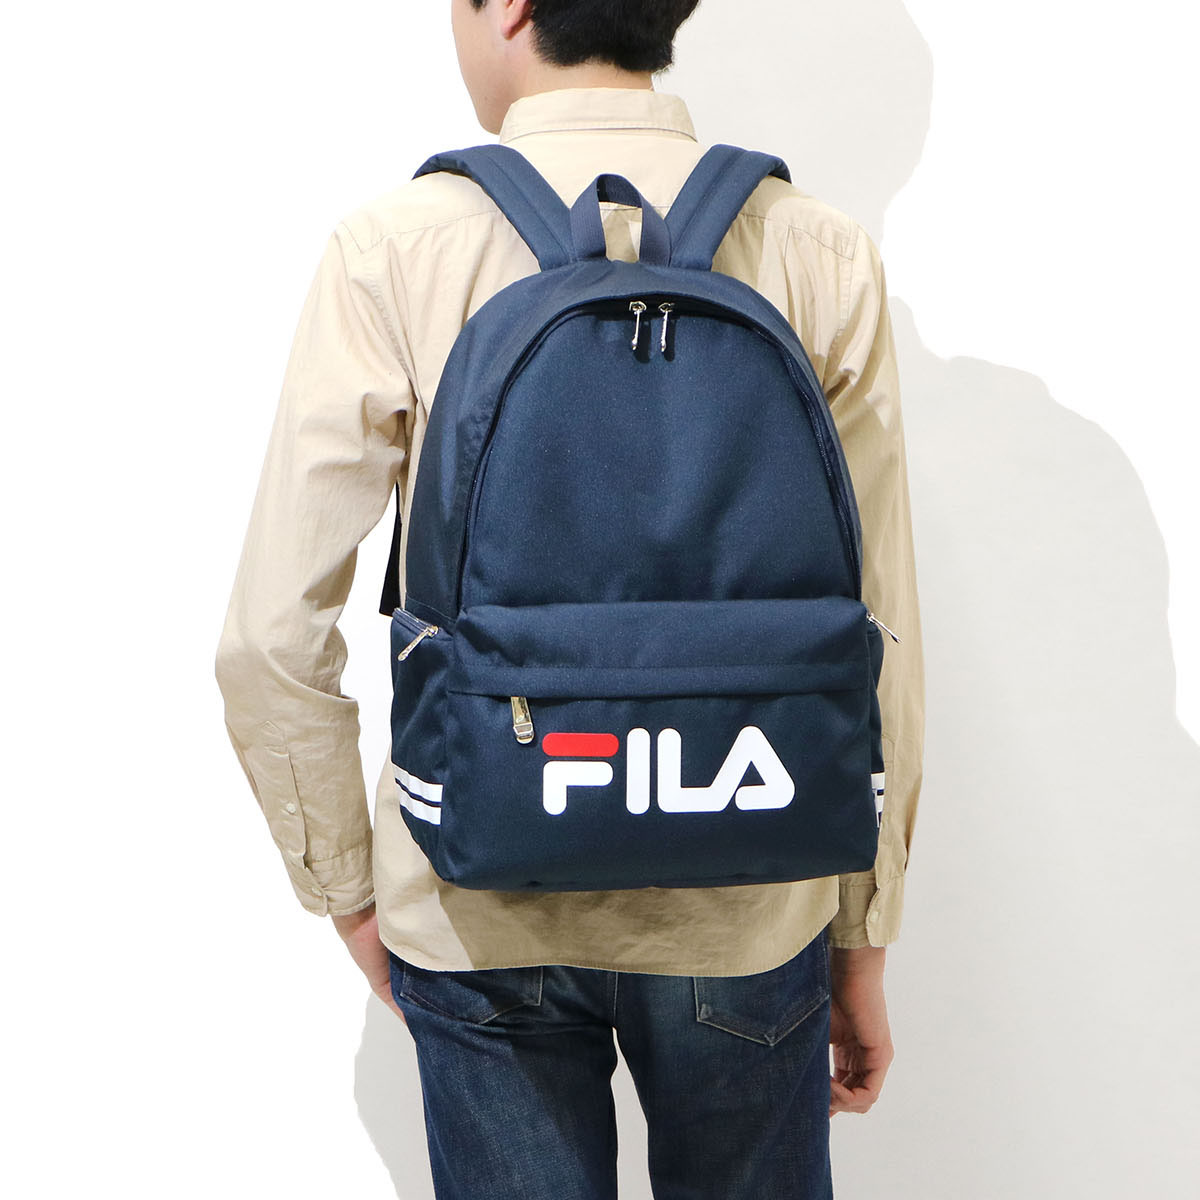 FILA Backpack commuter school bag B4 men's ladies 7494